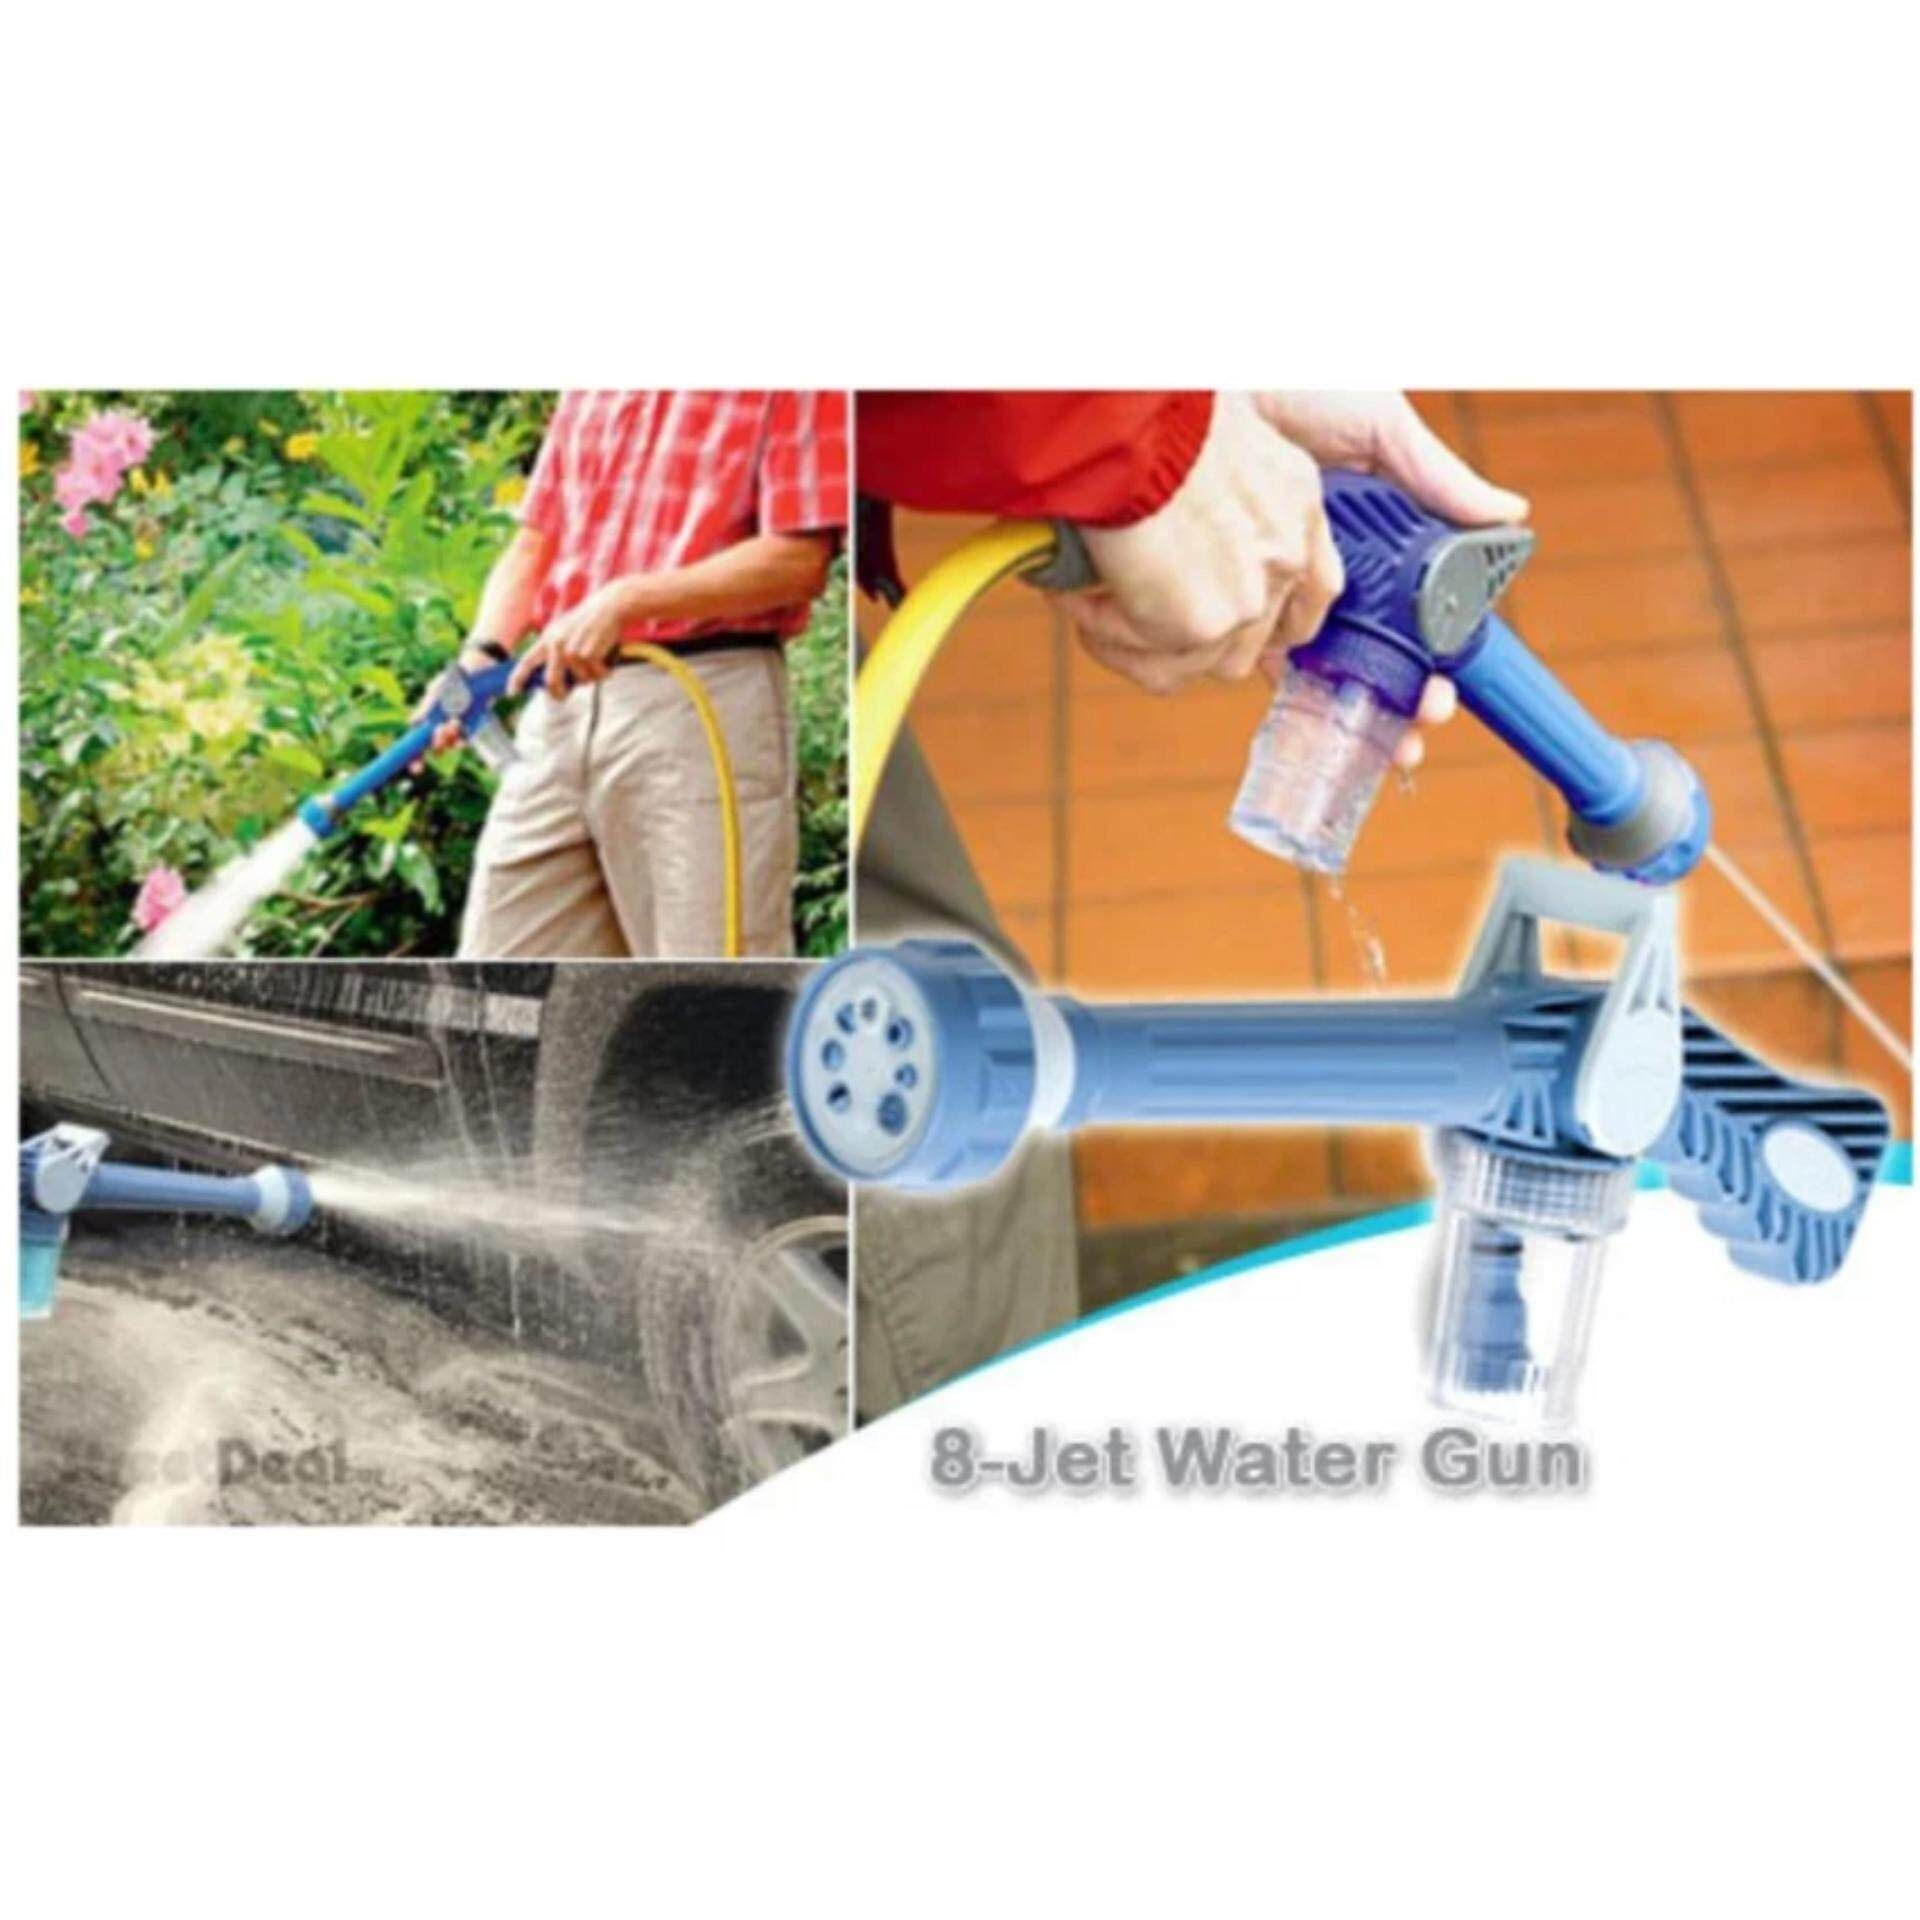 EZ Jet Water Cannon.Multi Function Water Soap Cannon Dispenser Nozzle Spray Gun Cleaning Car Wash